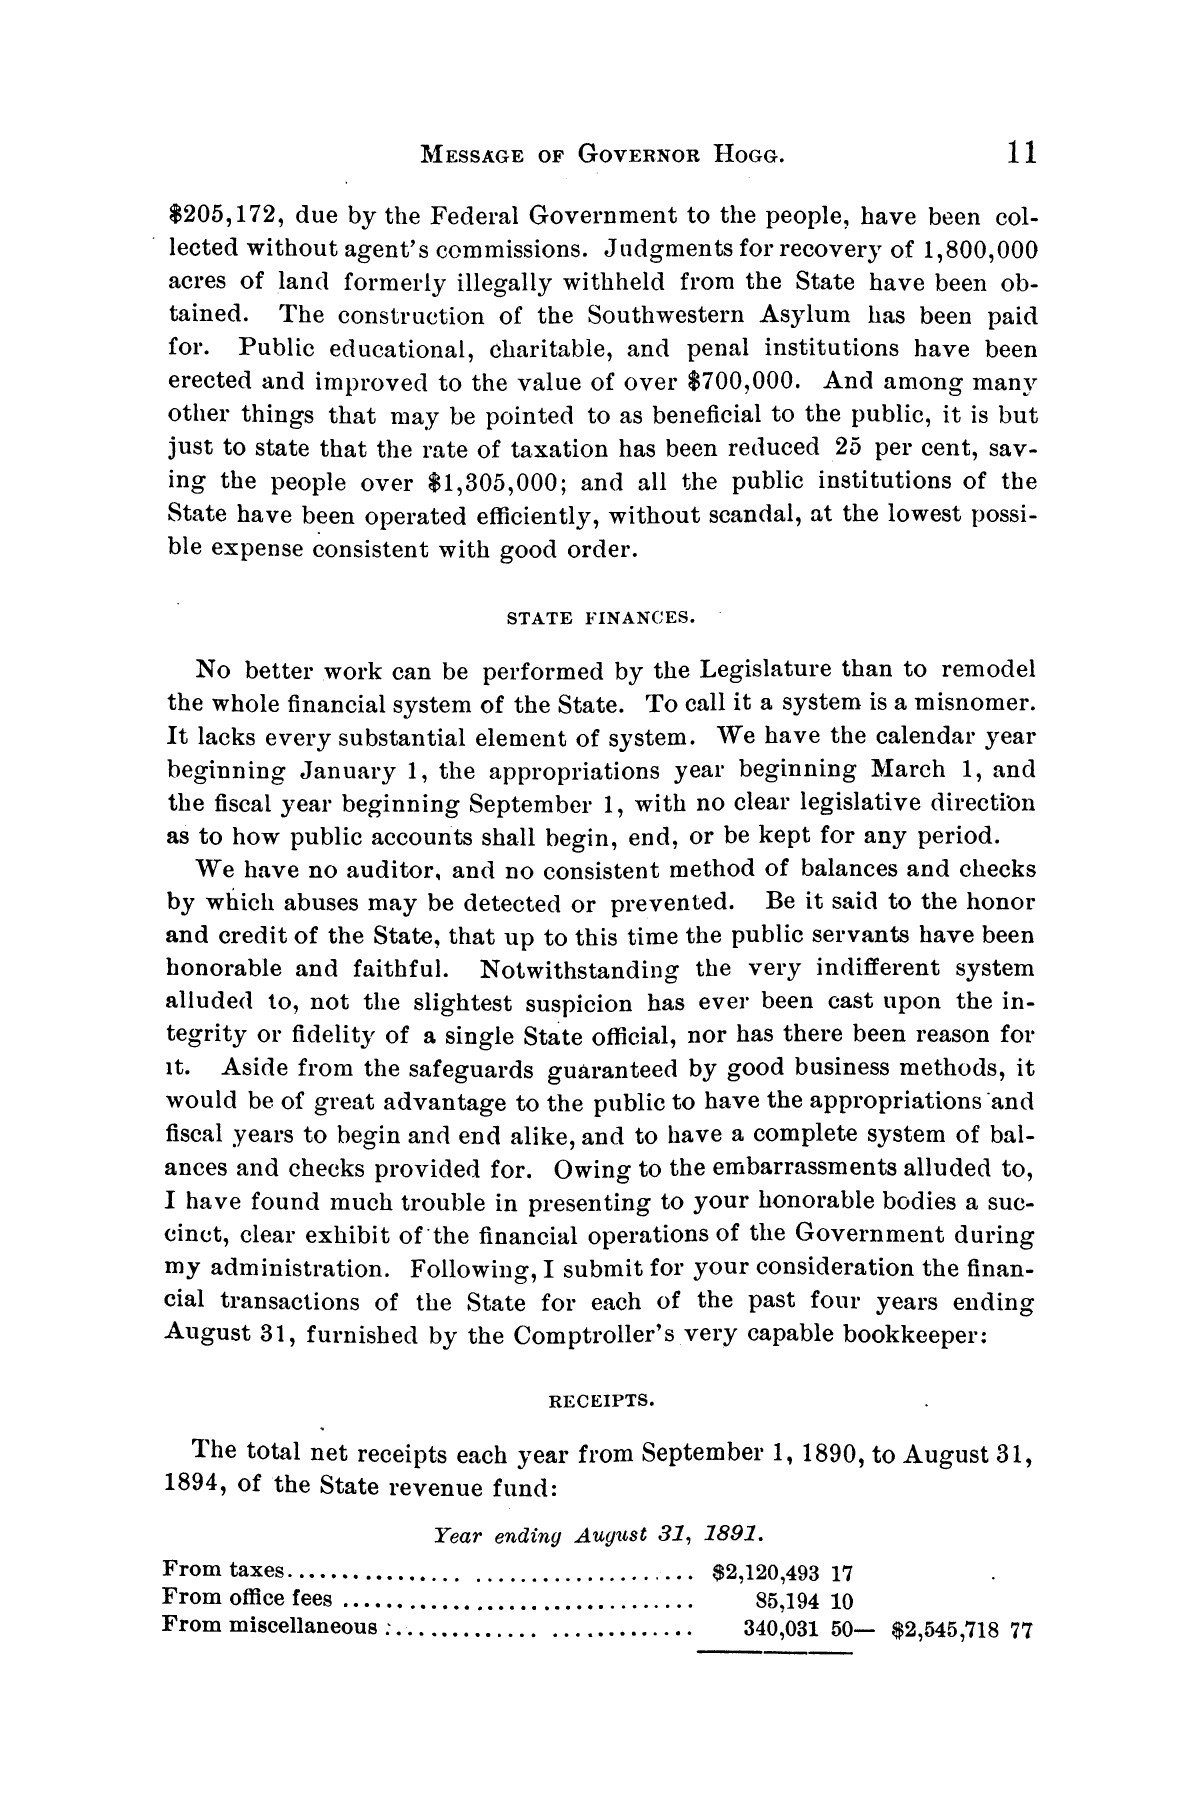 Message of Governor James S. Hogg to the twenty-fourth legislature of Texas                                                                                                      [Sequence #]: 11 of 48